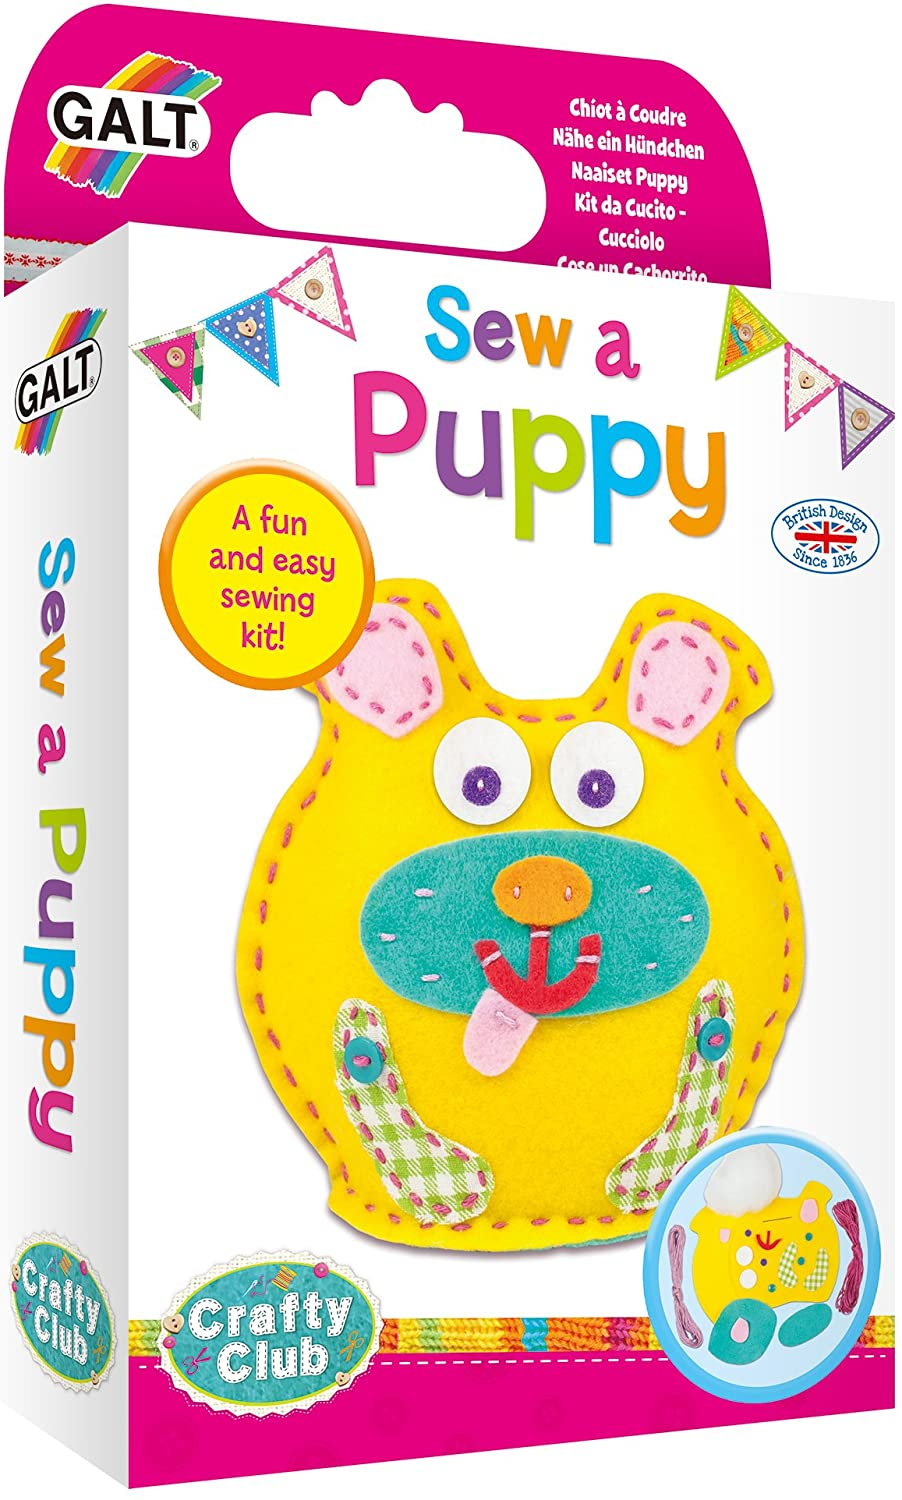 Galt sew a puppy kit The Bubble Room Toy Store Skerries Dublin